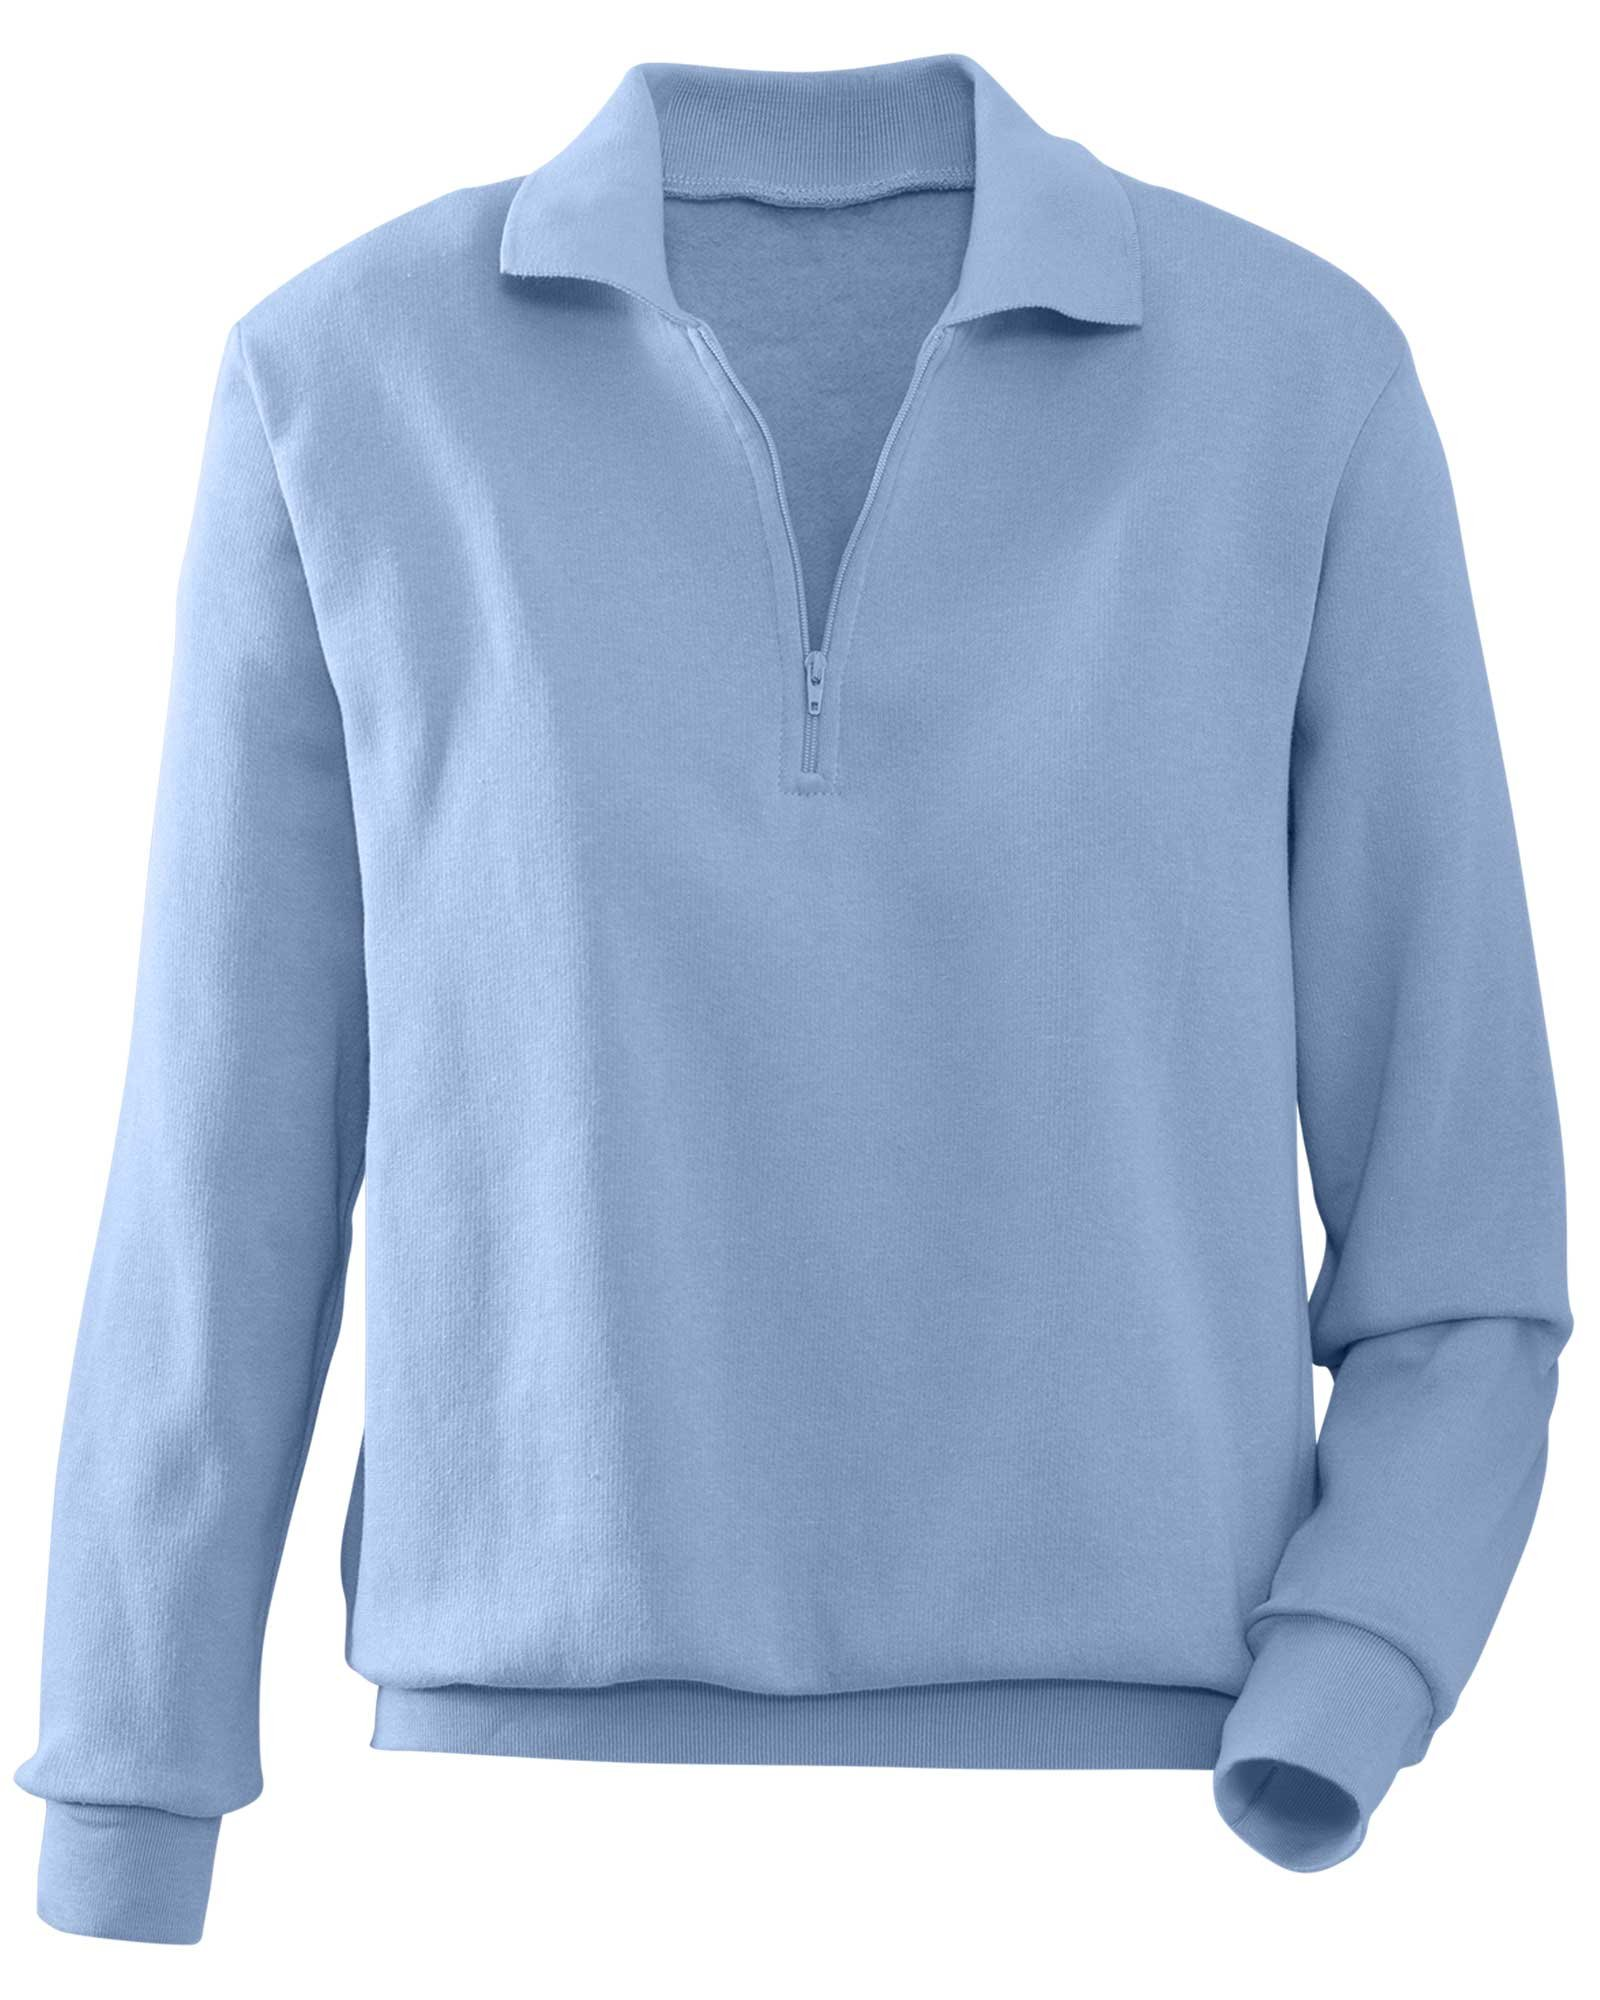 National Fleece ½ Zip Pullover product image